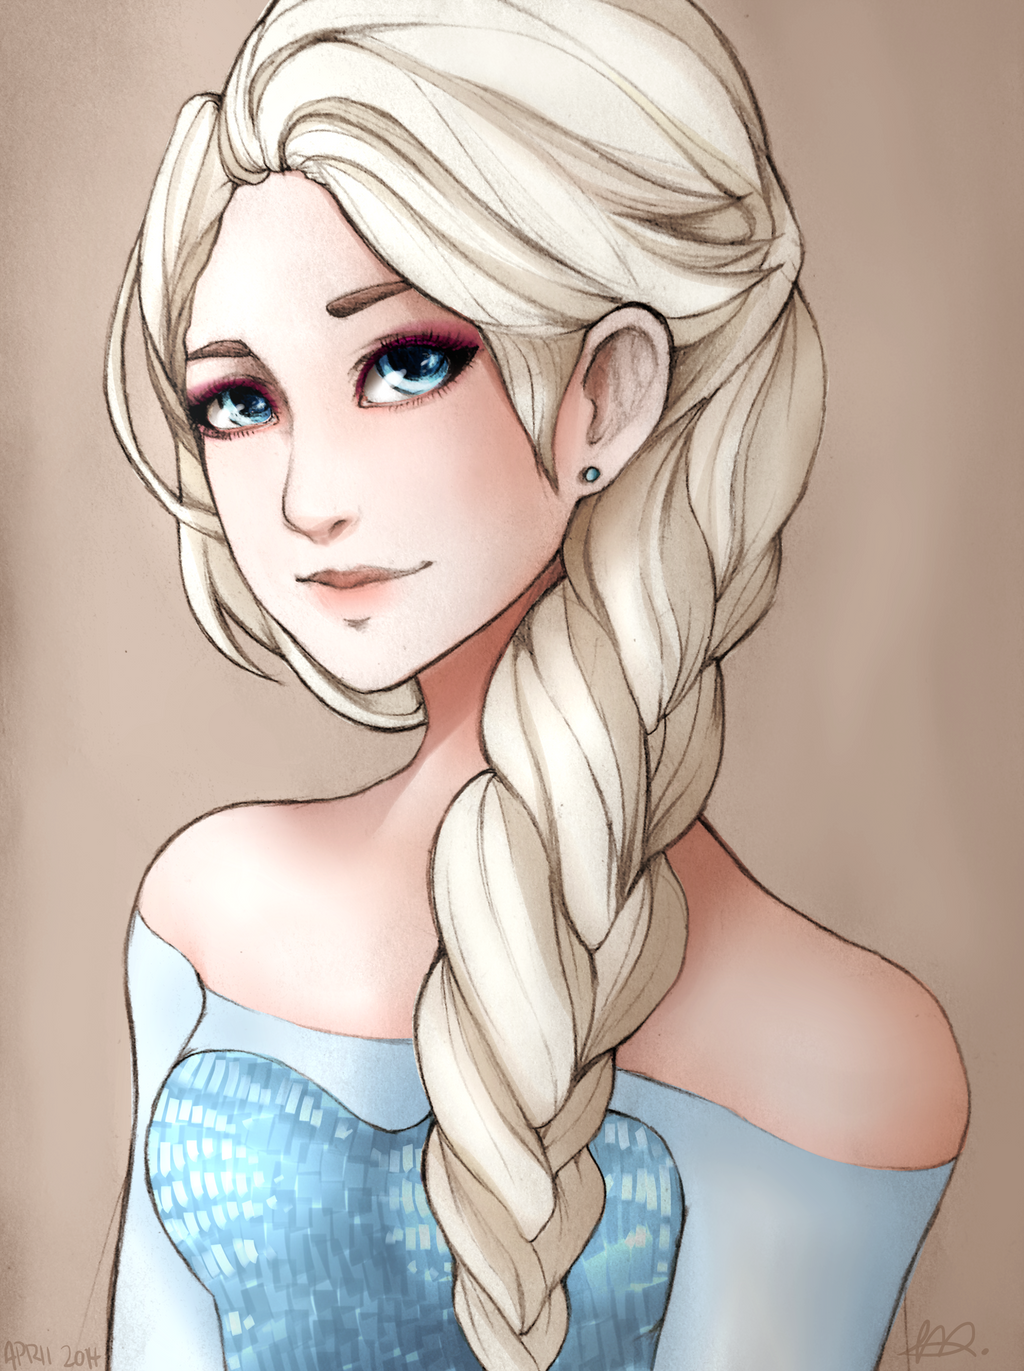 Queen Elsa (BUY AS PRINT - SEE DESC.) by Maxxie-Delu